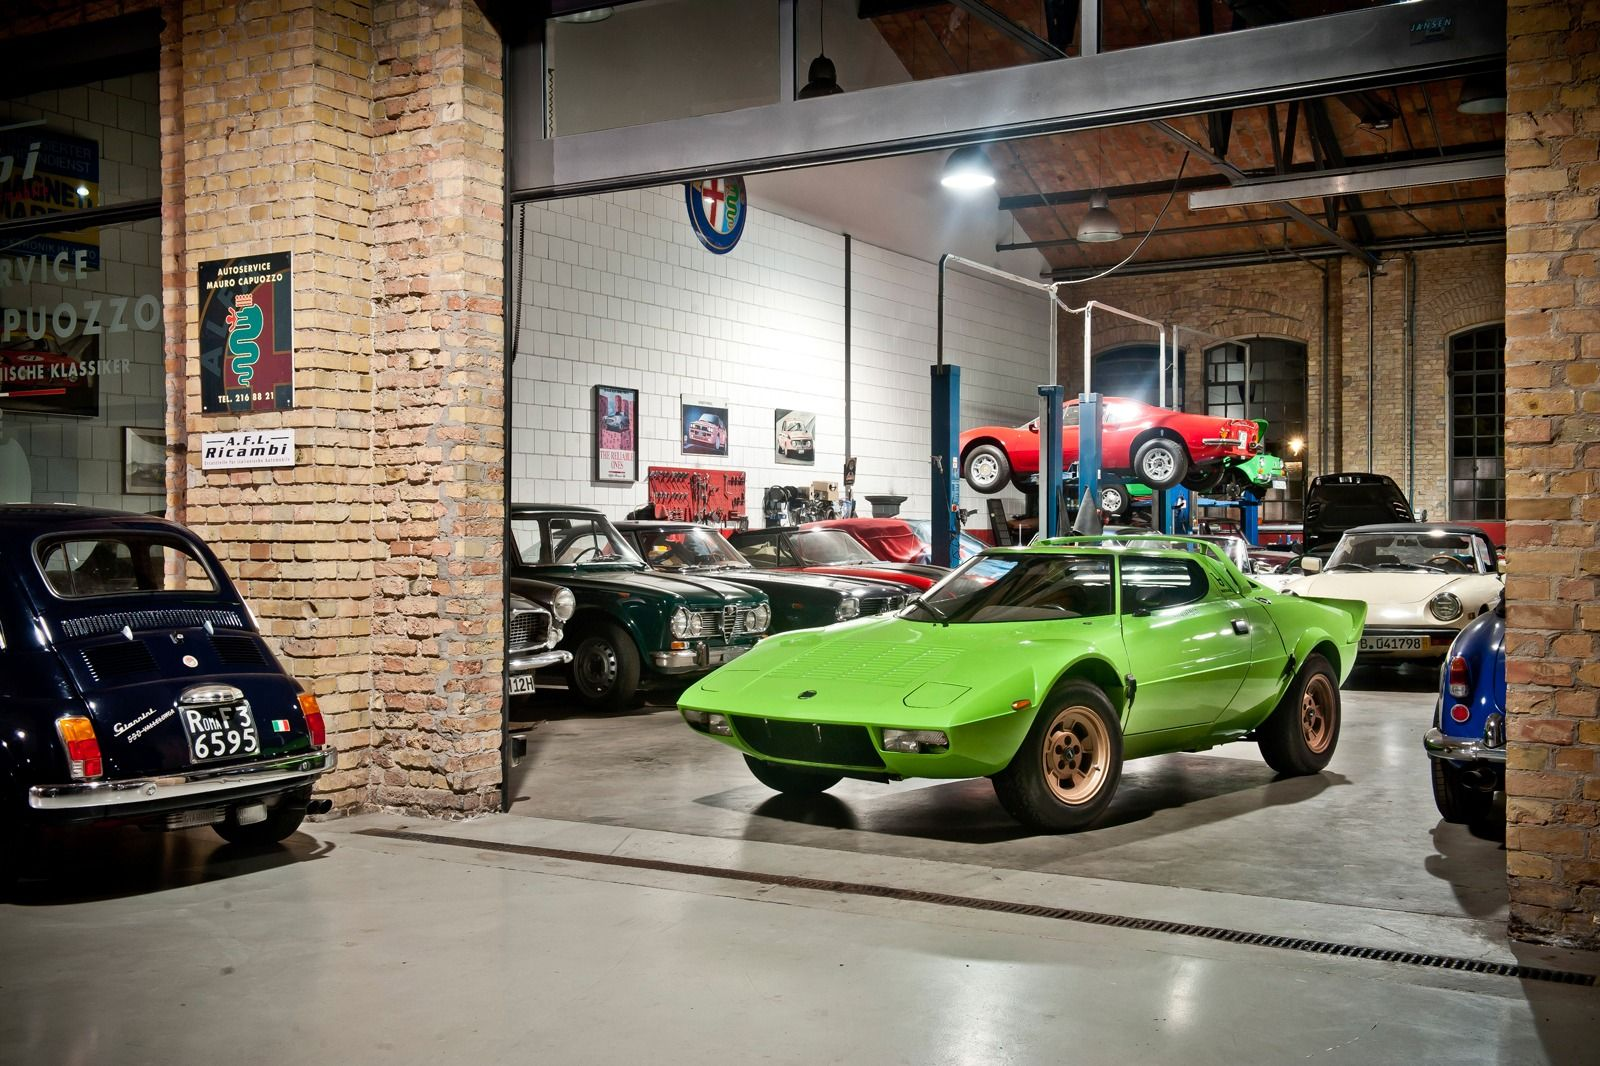 1975 Lancia Stratos and Italian friends